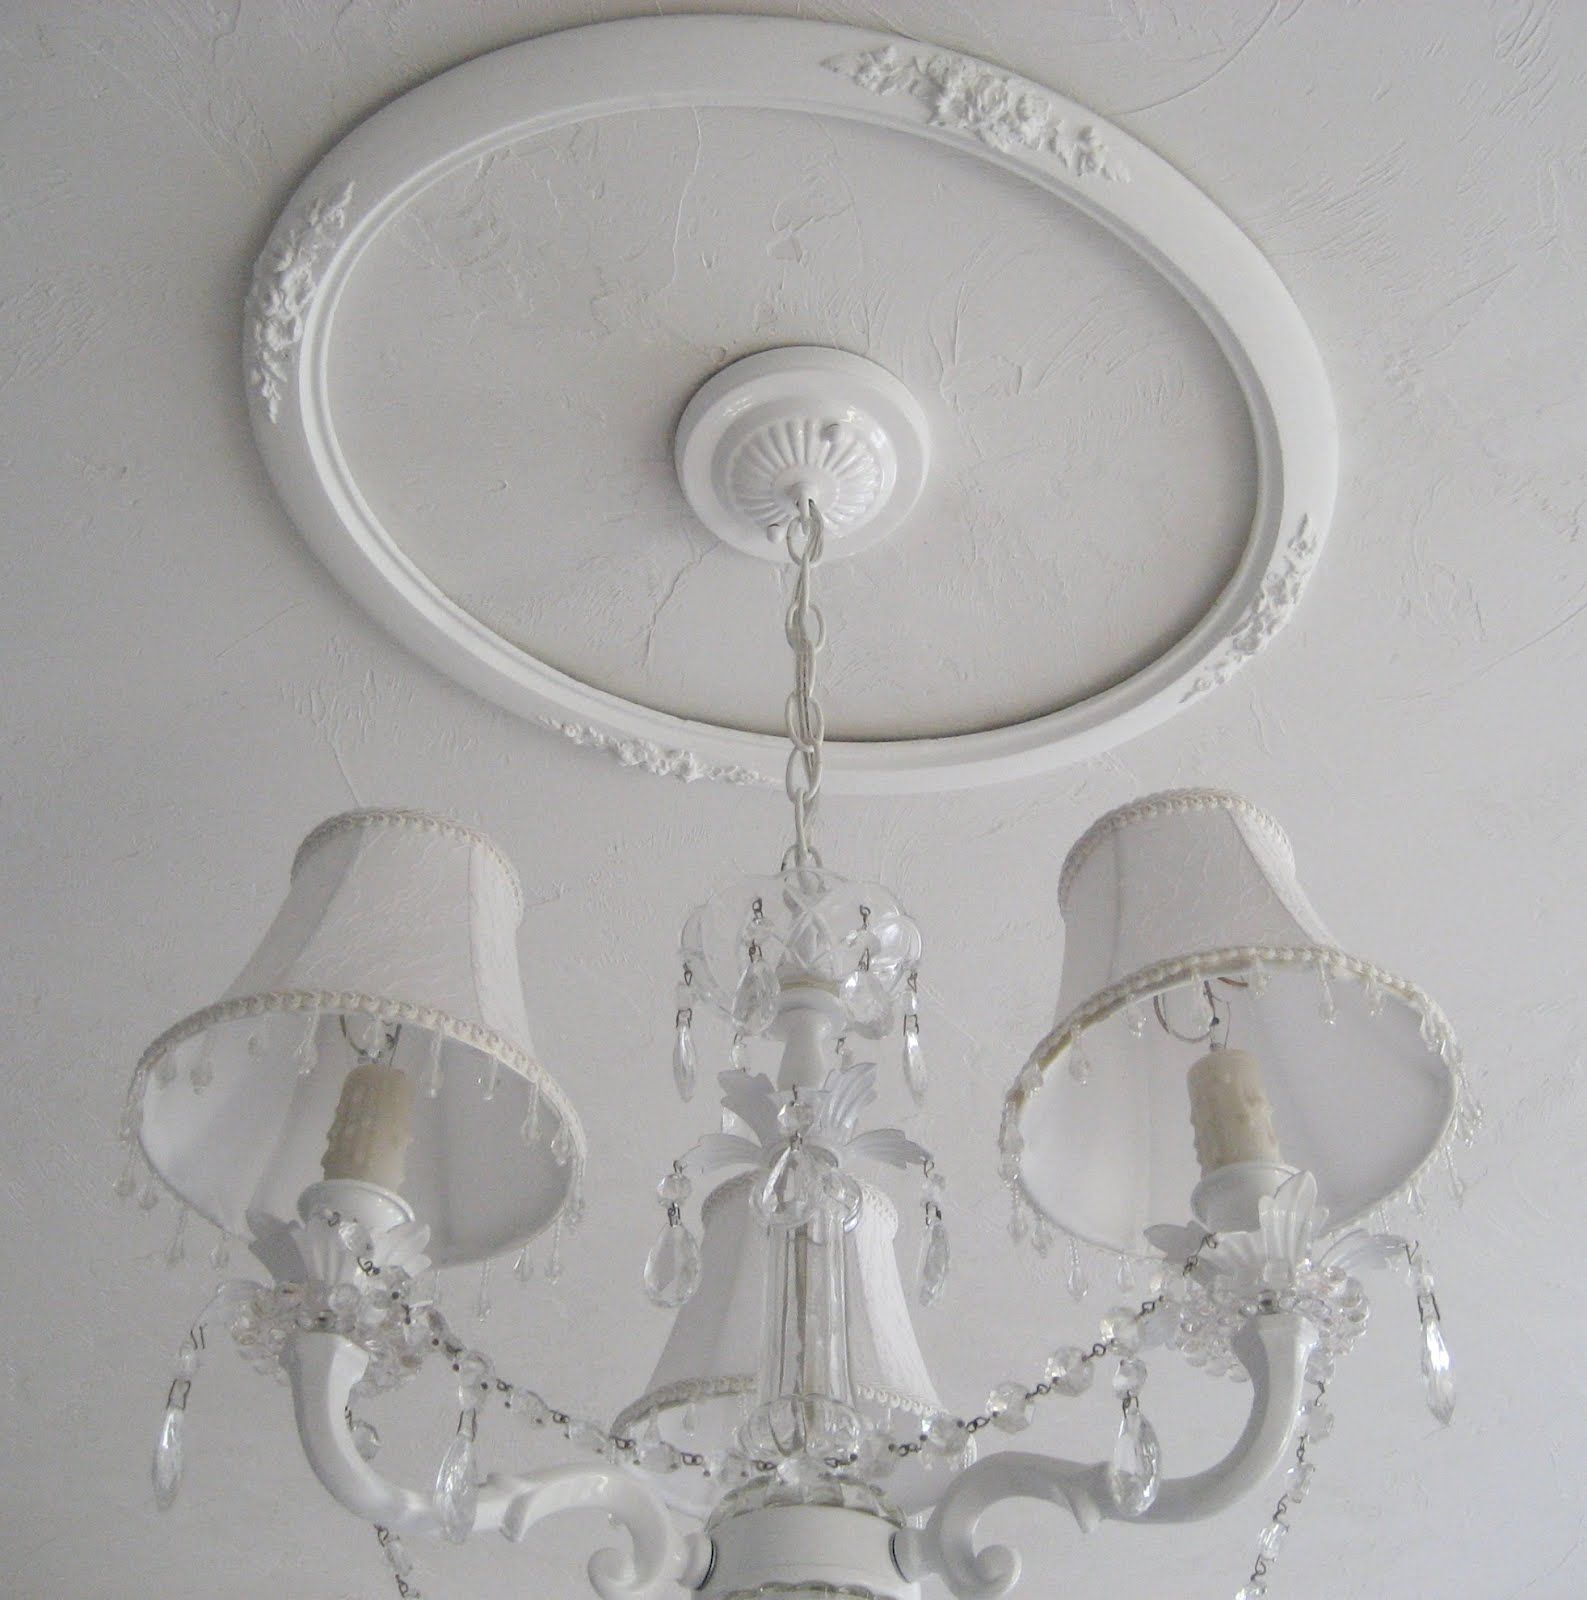 Tip Repurpose a picture frame into a ceiling medallion